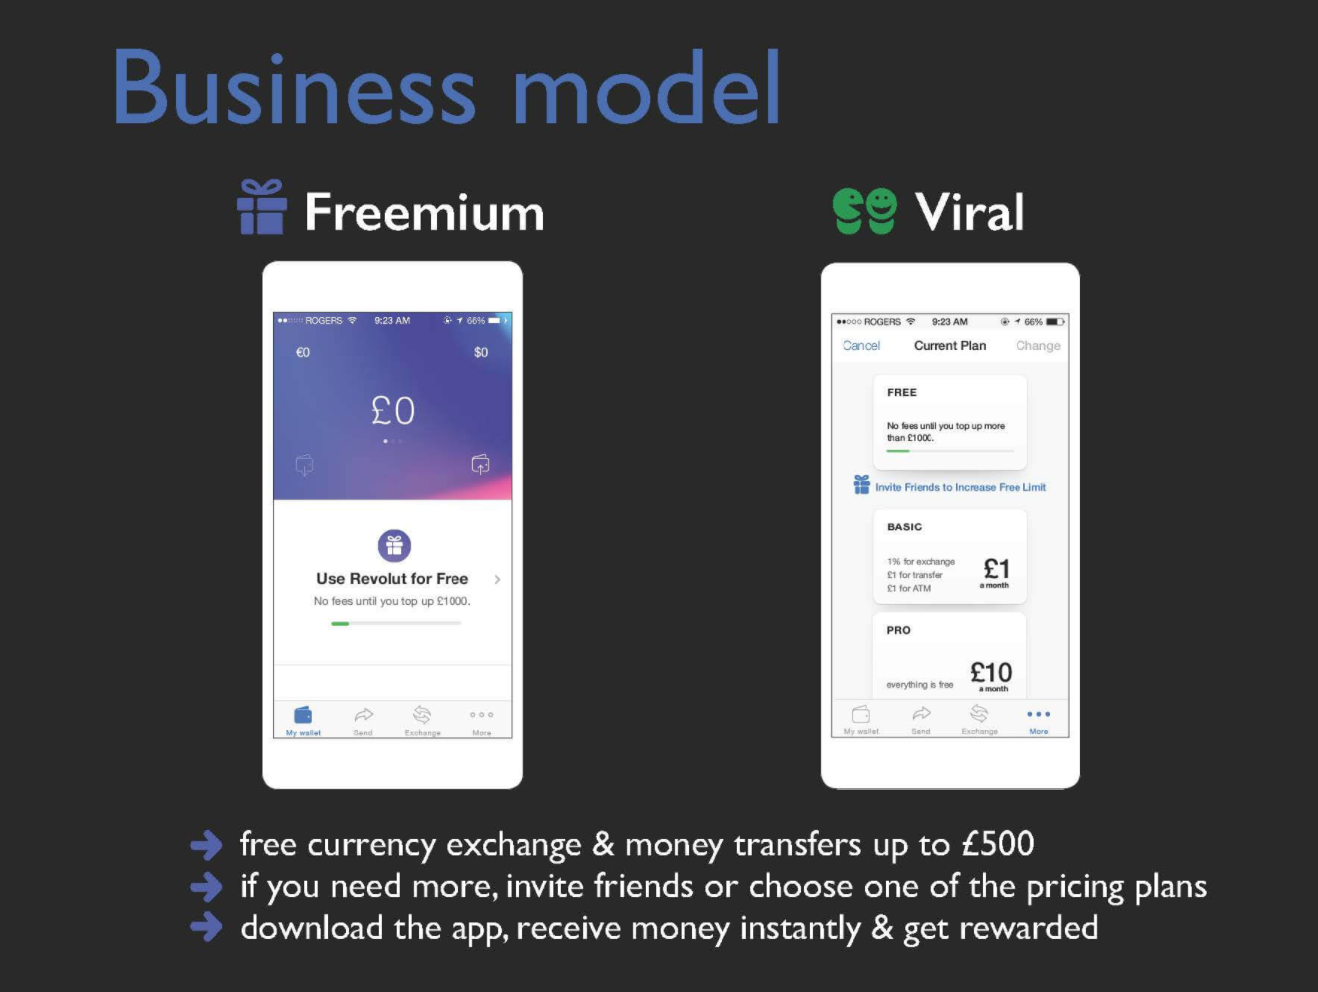 An overview of Revolut's businessmodel in their pitch to investors